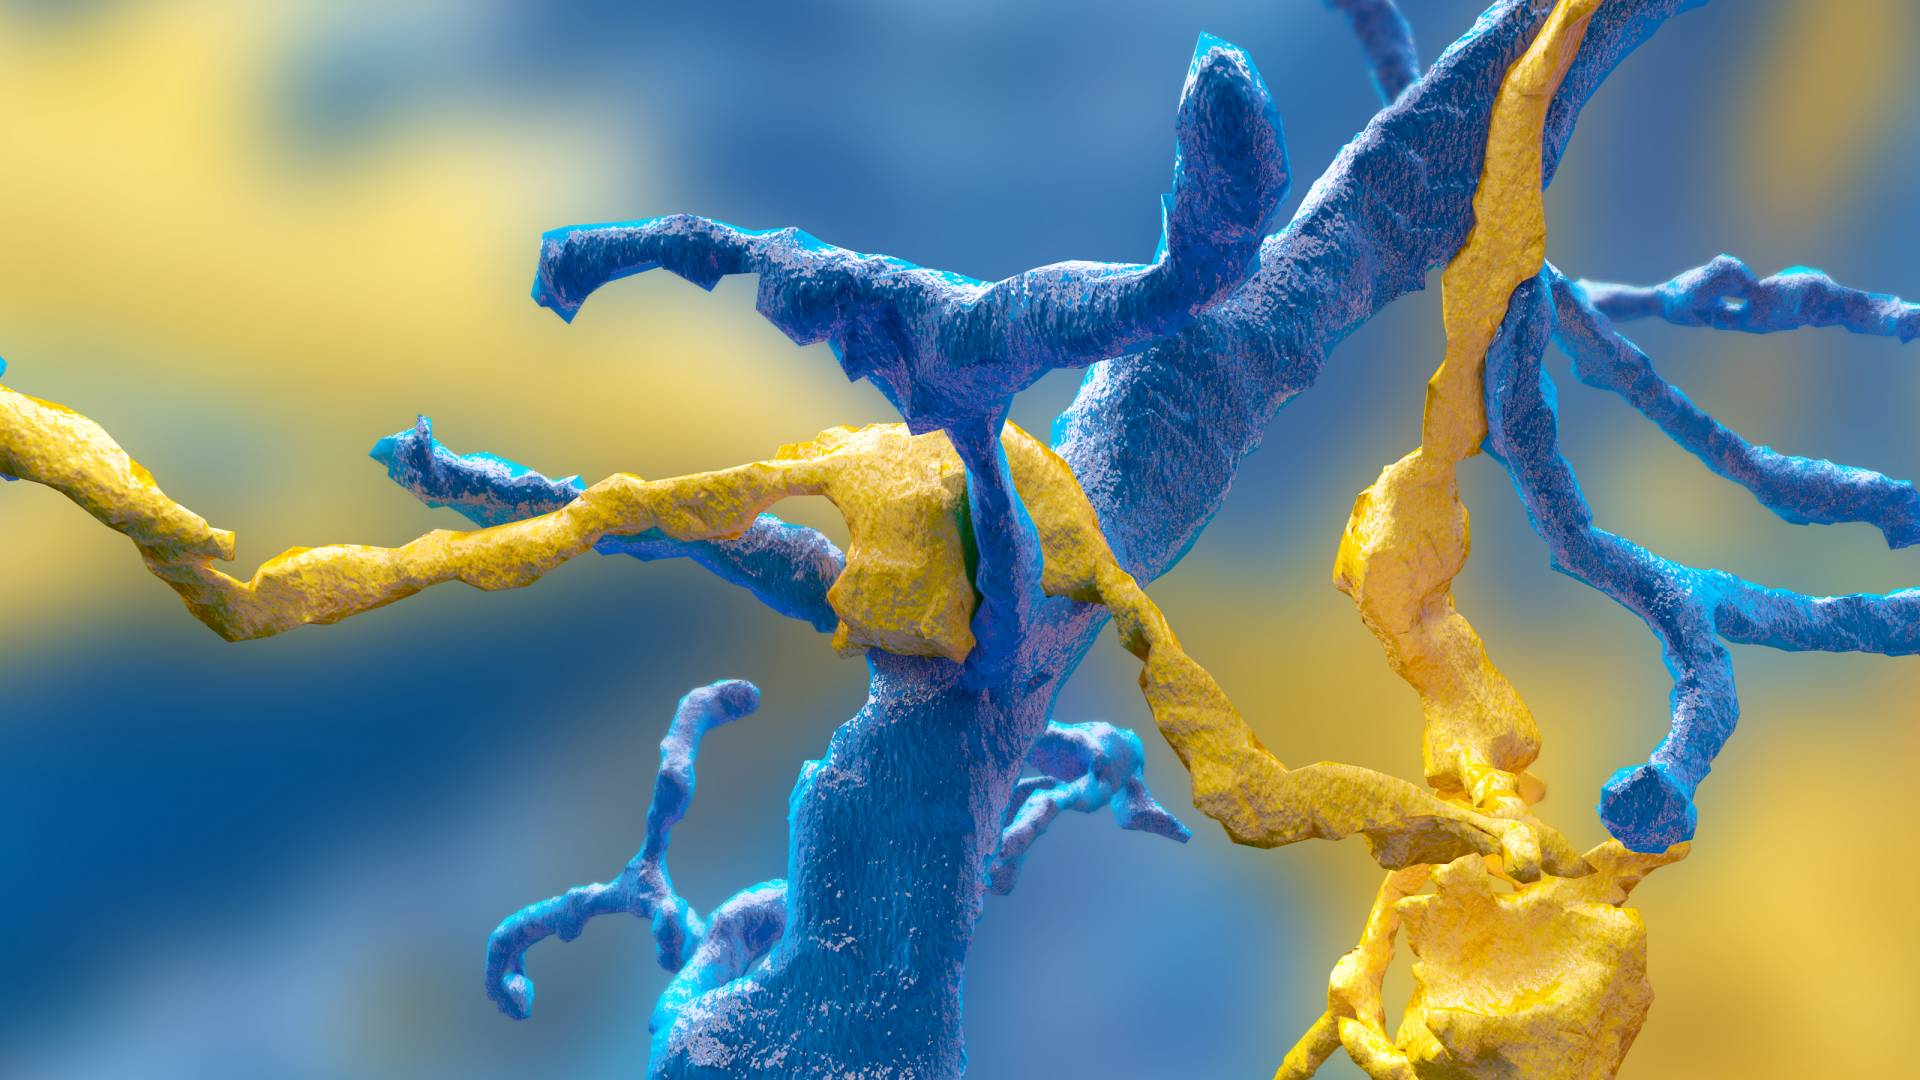 Synapse between a ganglion neuron (blue) and a starburst amacrine cell (yellow) mapped by Eyewire gamers.